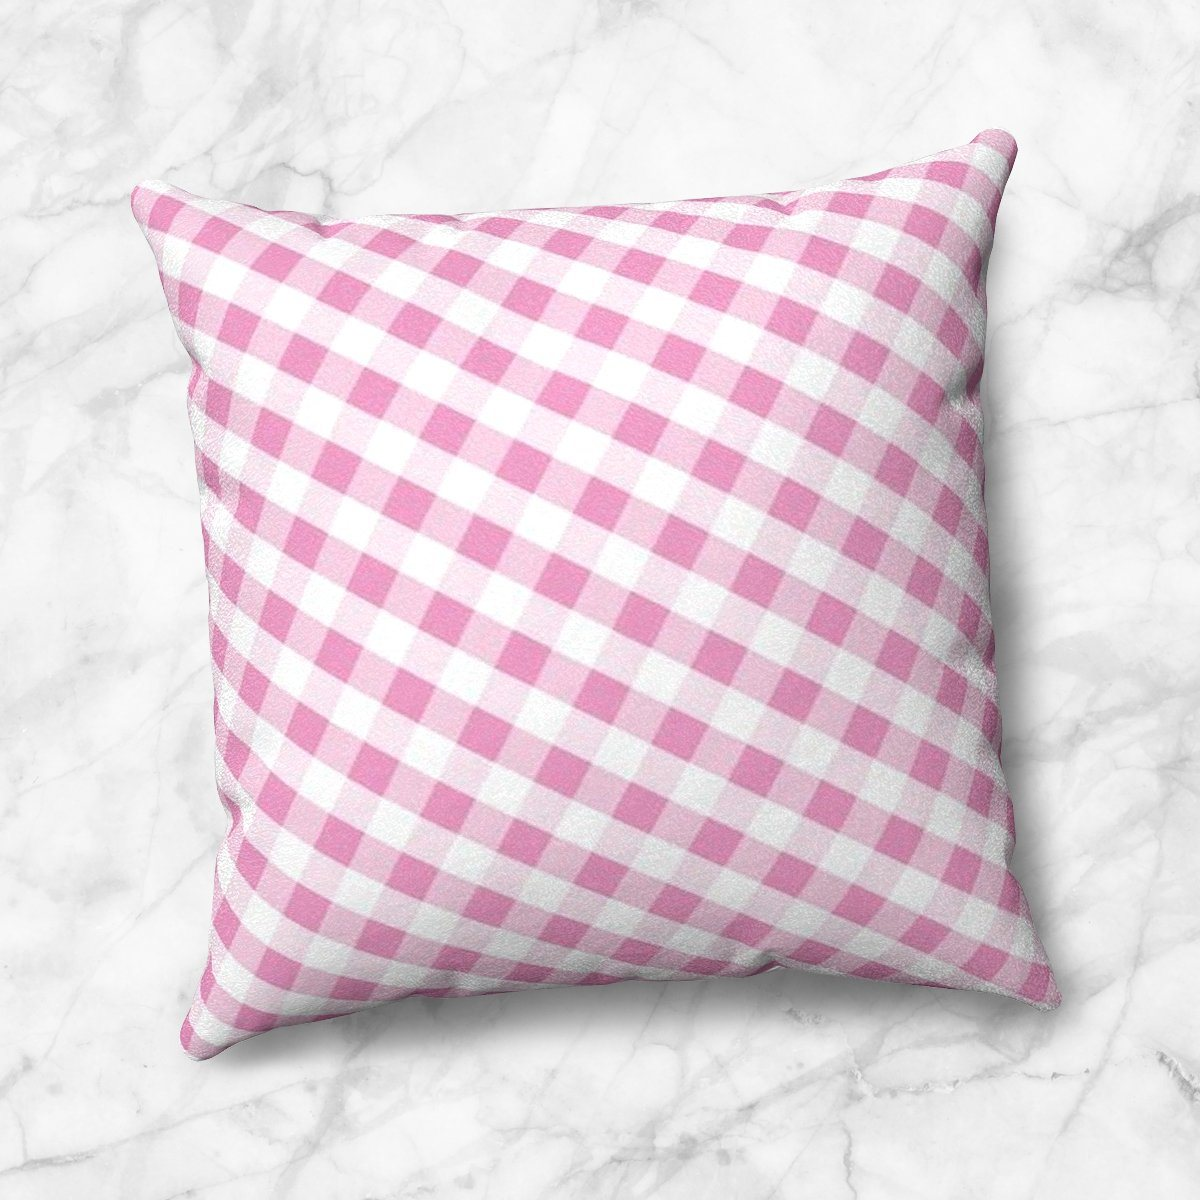 Pink Gingham Throw Pillow at Speckle Rock